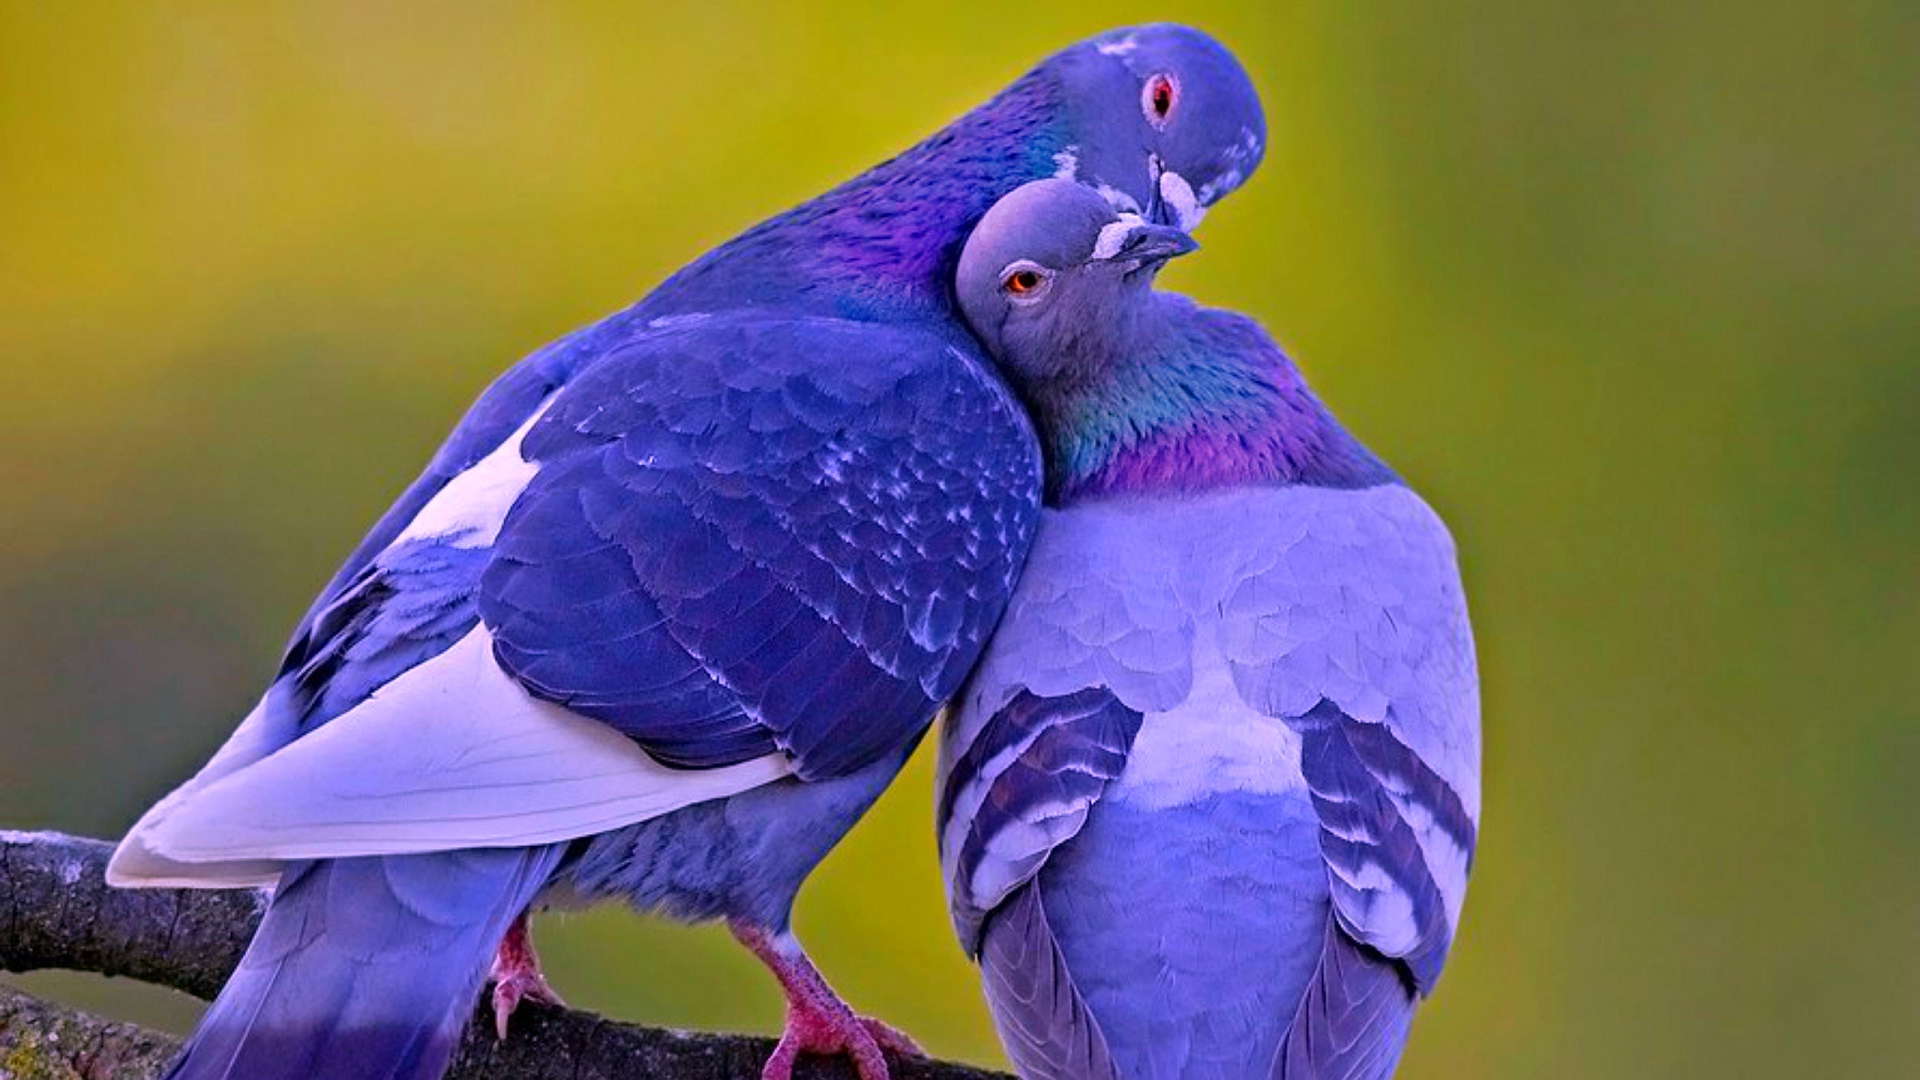 Free Download Love Bird Kissing Hd Wallpapers Rocks 1920x1200 For Your Desktop Mobile Tablet Explore 48 Birds Wallpaper Free Download Parrot Wallpapers Free Download Free Bird Wallpaper Screensavers Beautiful